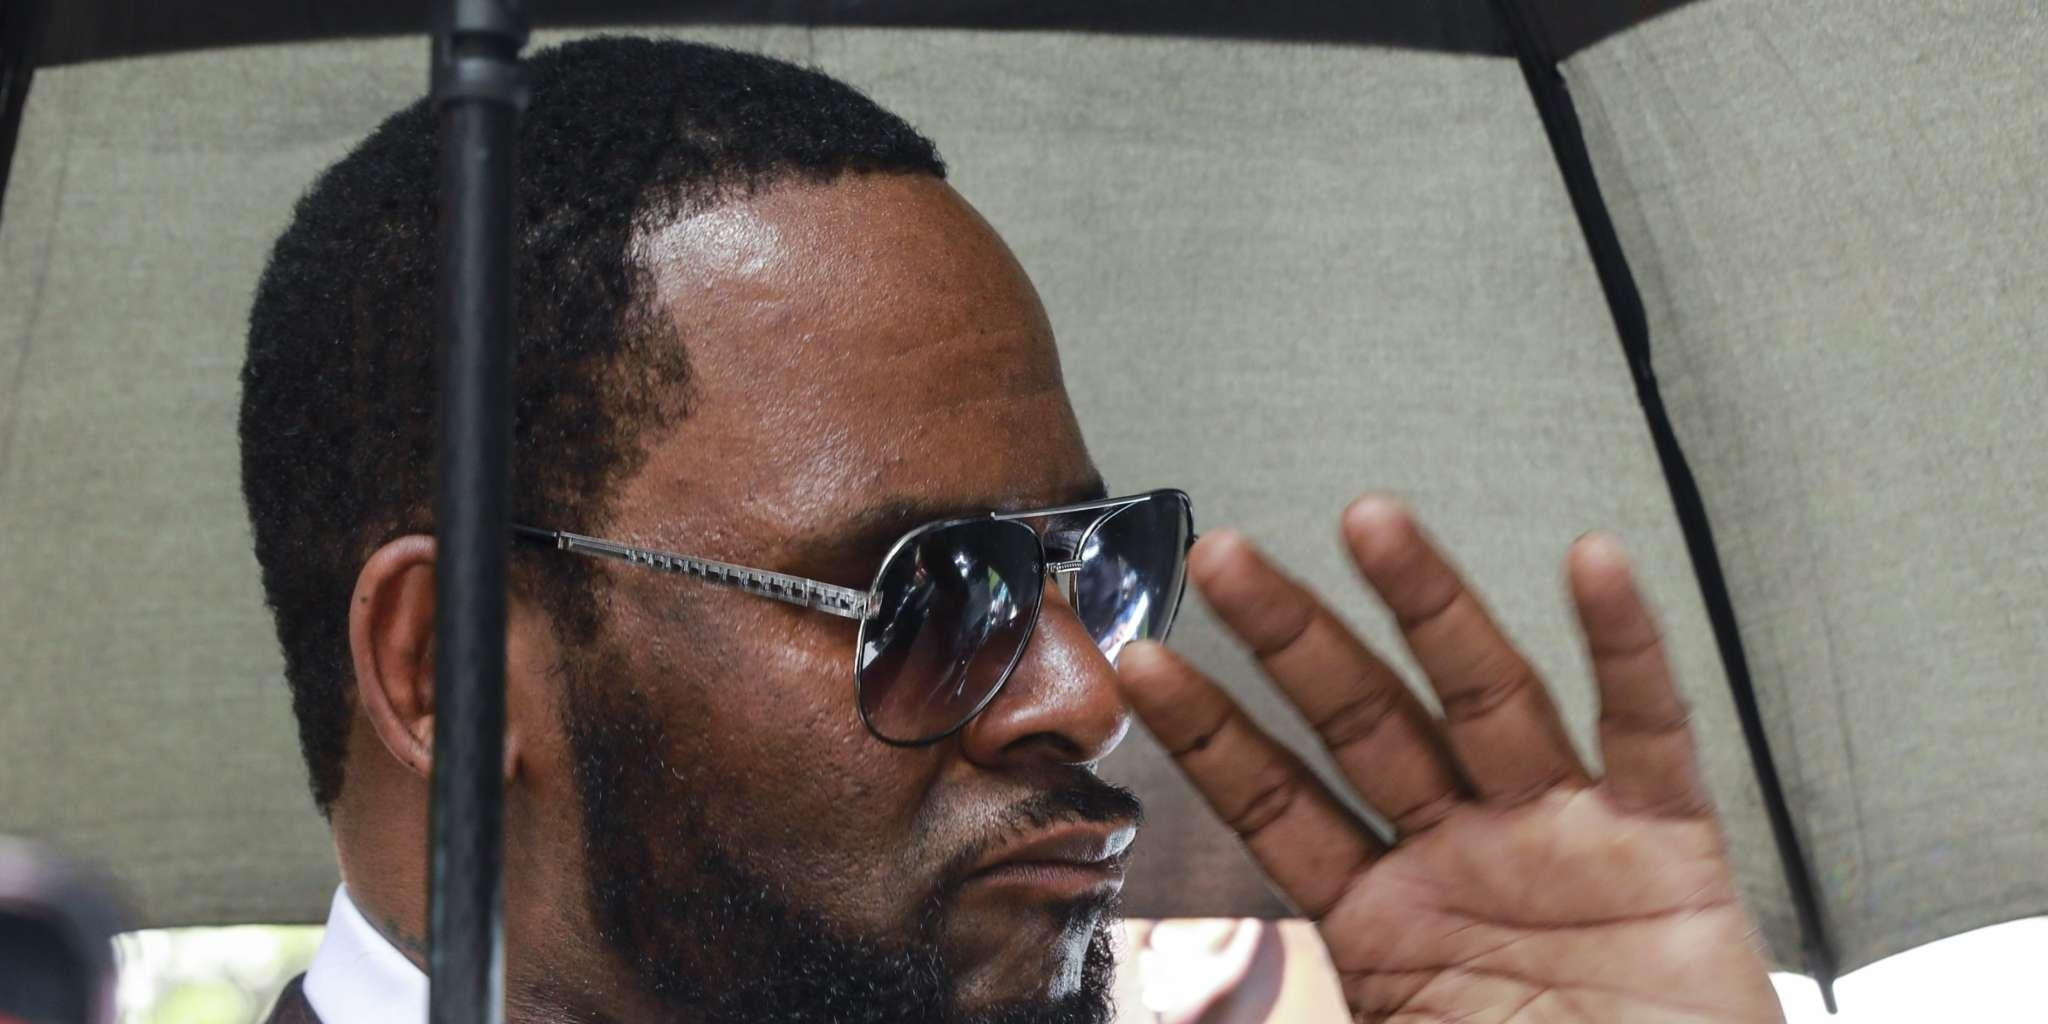 Lifetime Builds On Their 'Surviving R. Kelly' Series - A New Follow-Up Is Announced - People Believe Kelly Is Being Pushed To Suicide